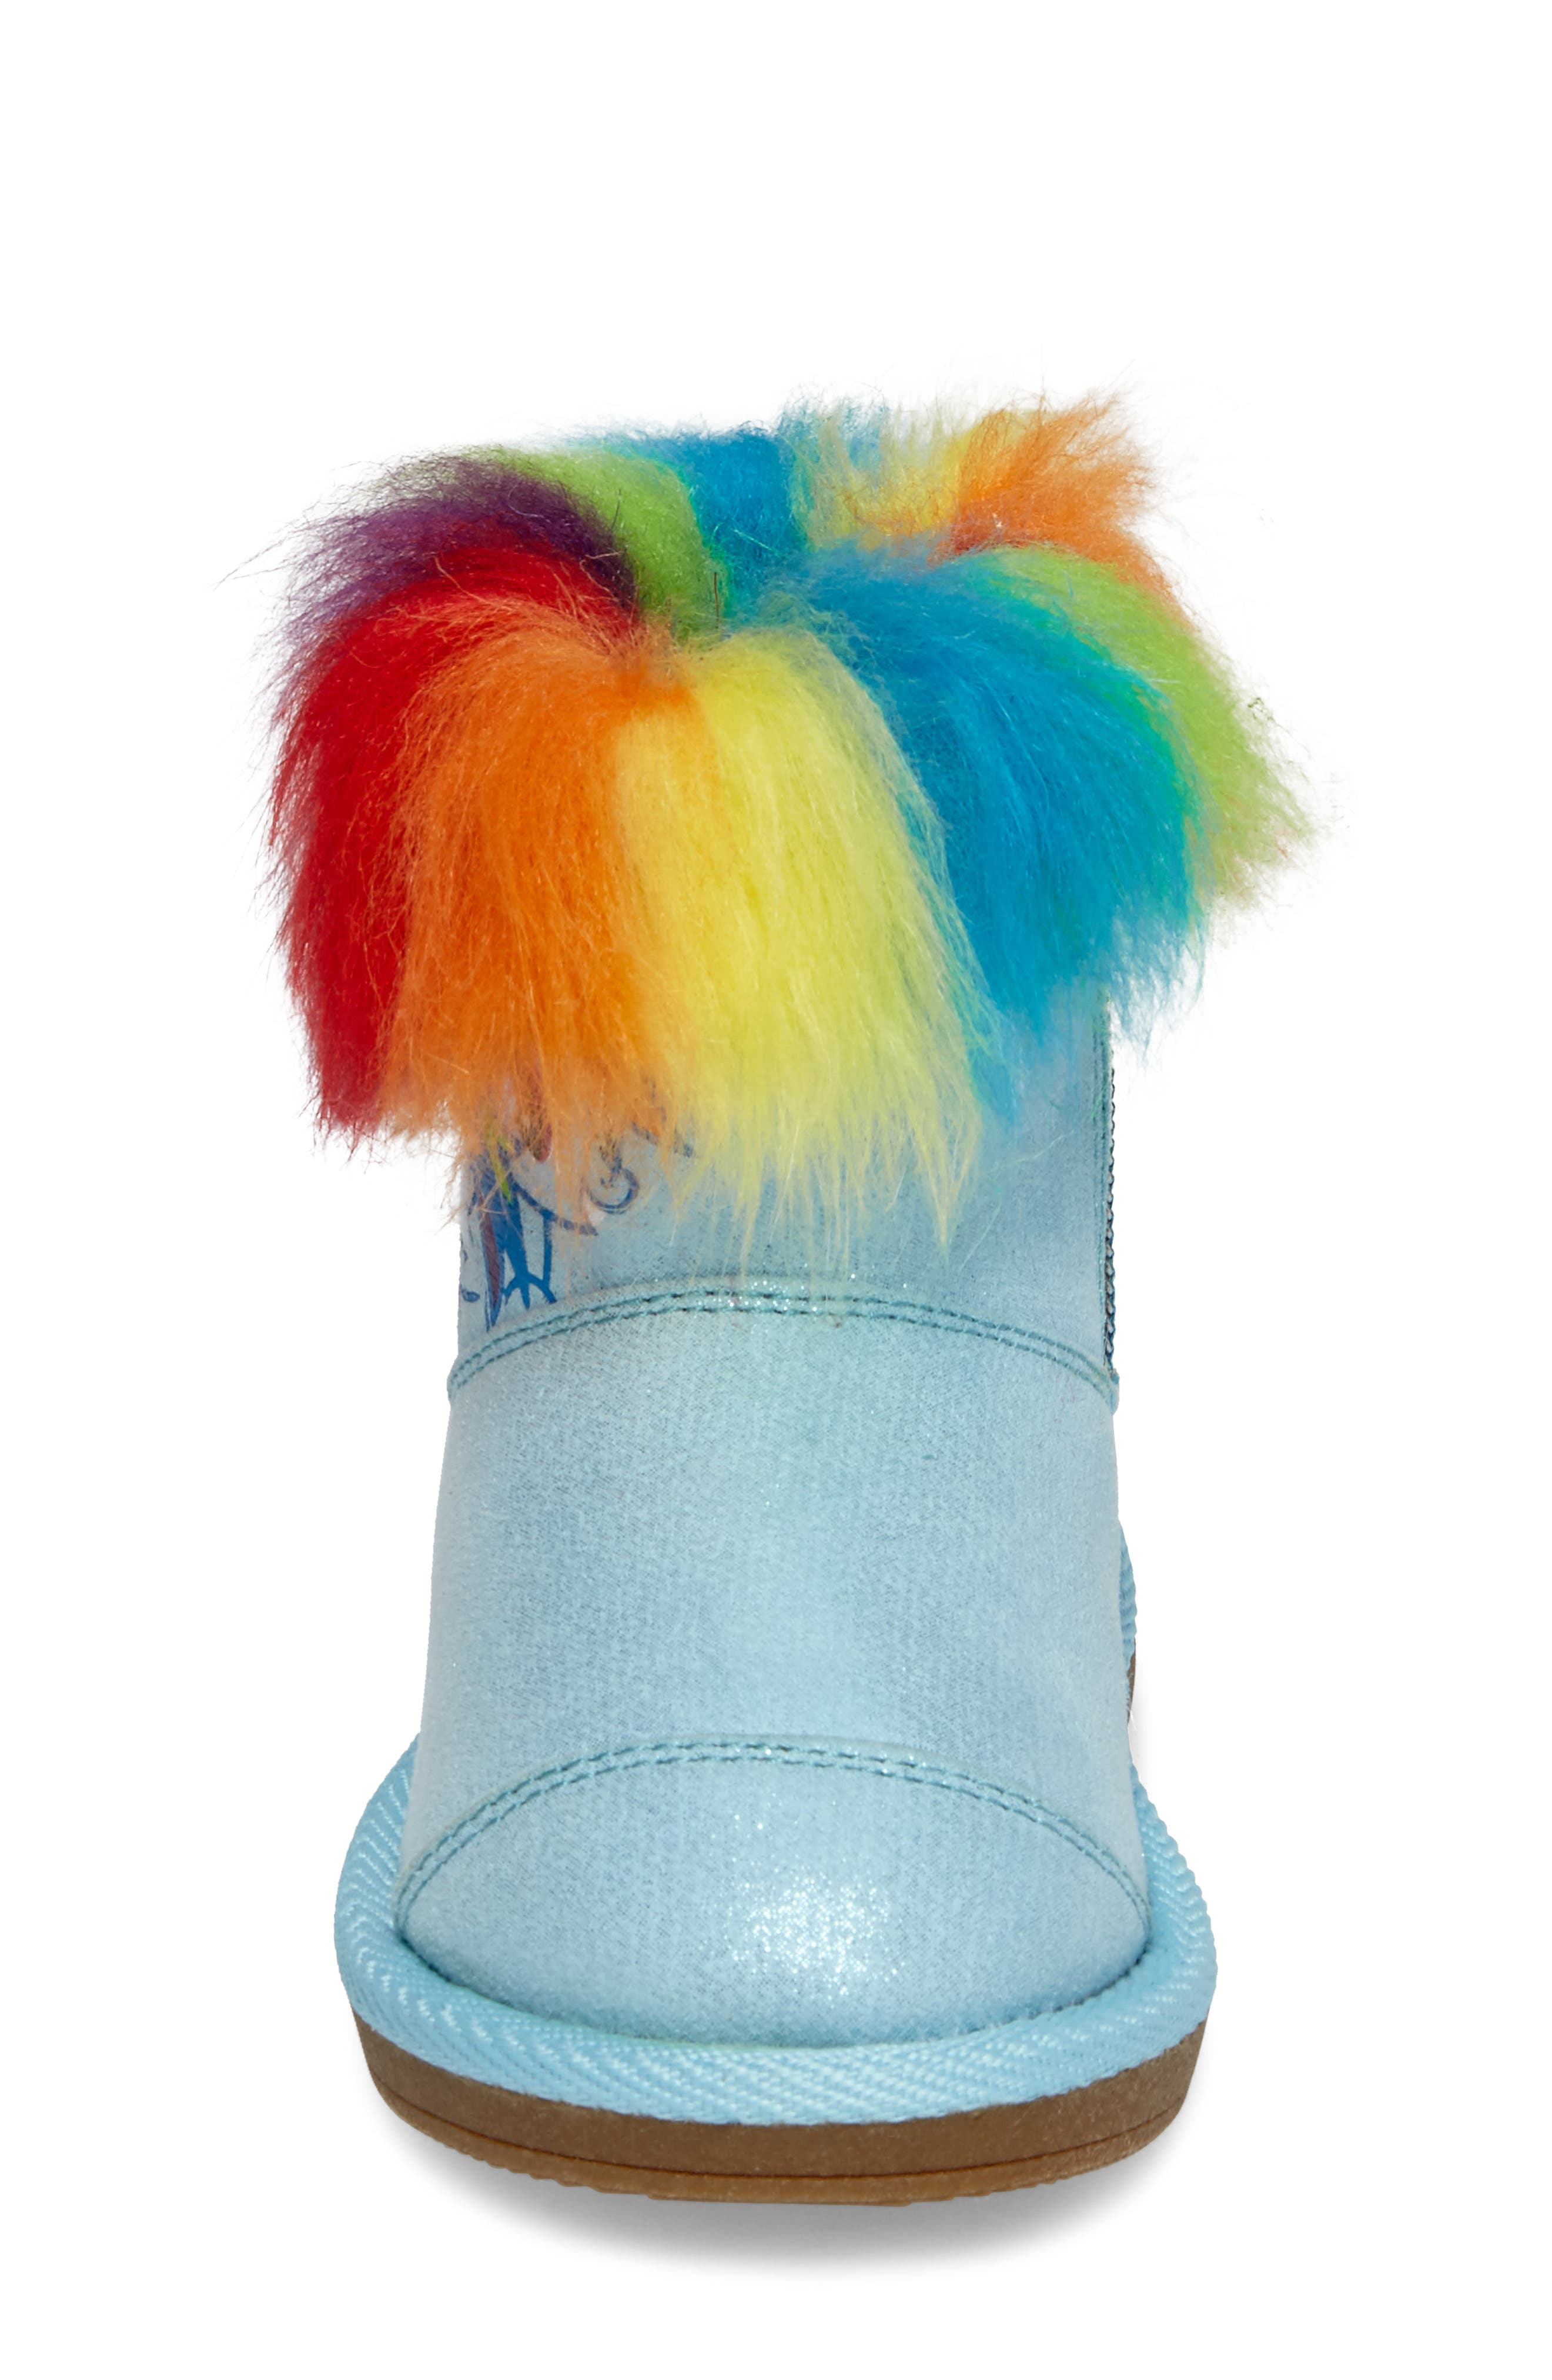 My Little Pony<sup>®</sup> Rainbow Dash Boot,                             Alternate thumbnail 4, color,                             400